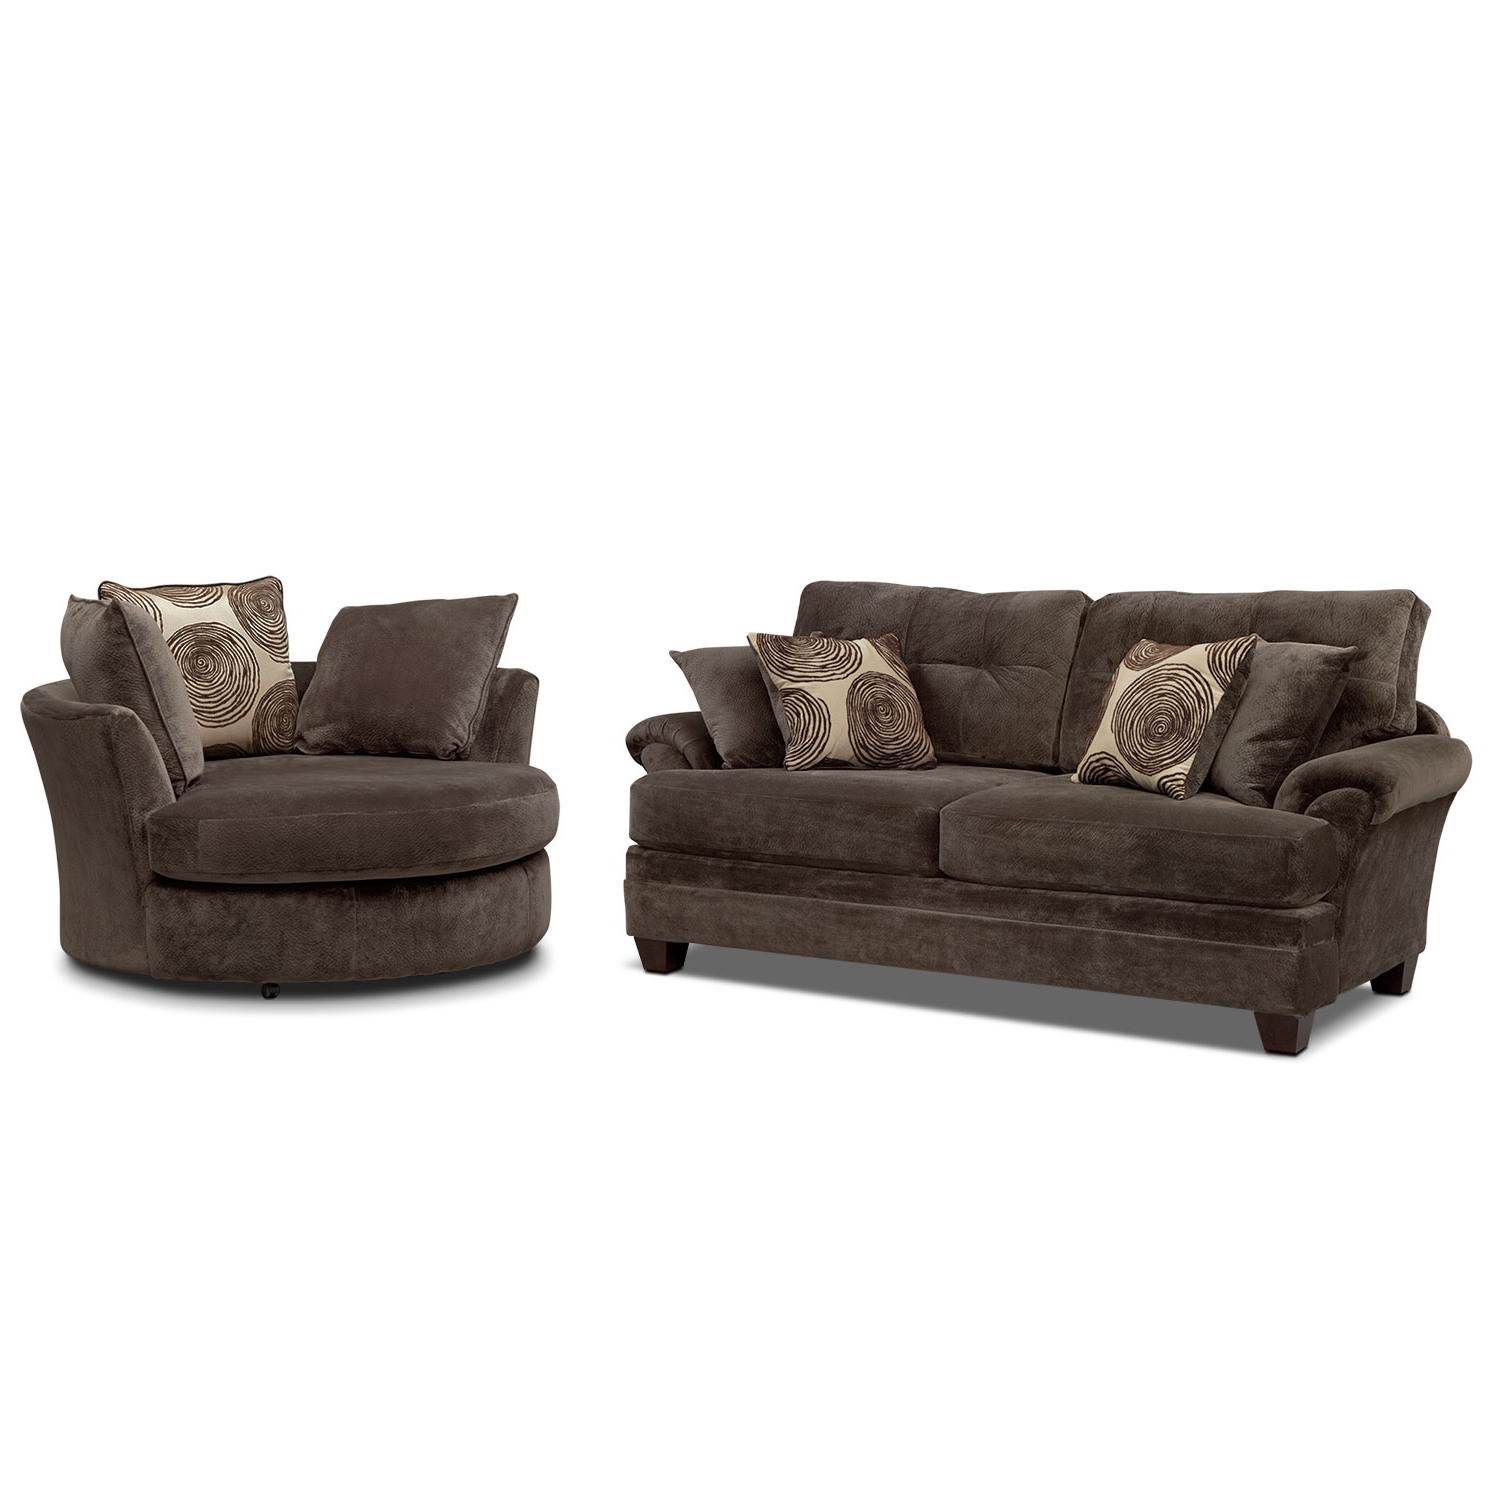 Cordelle Sofa And Swivel Chair Set (Gallery 6 of 20)